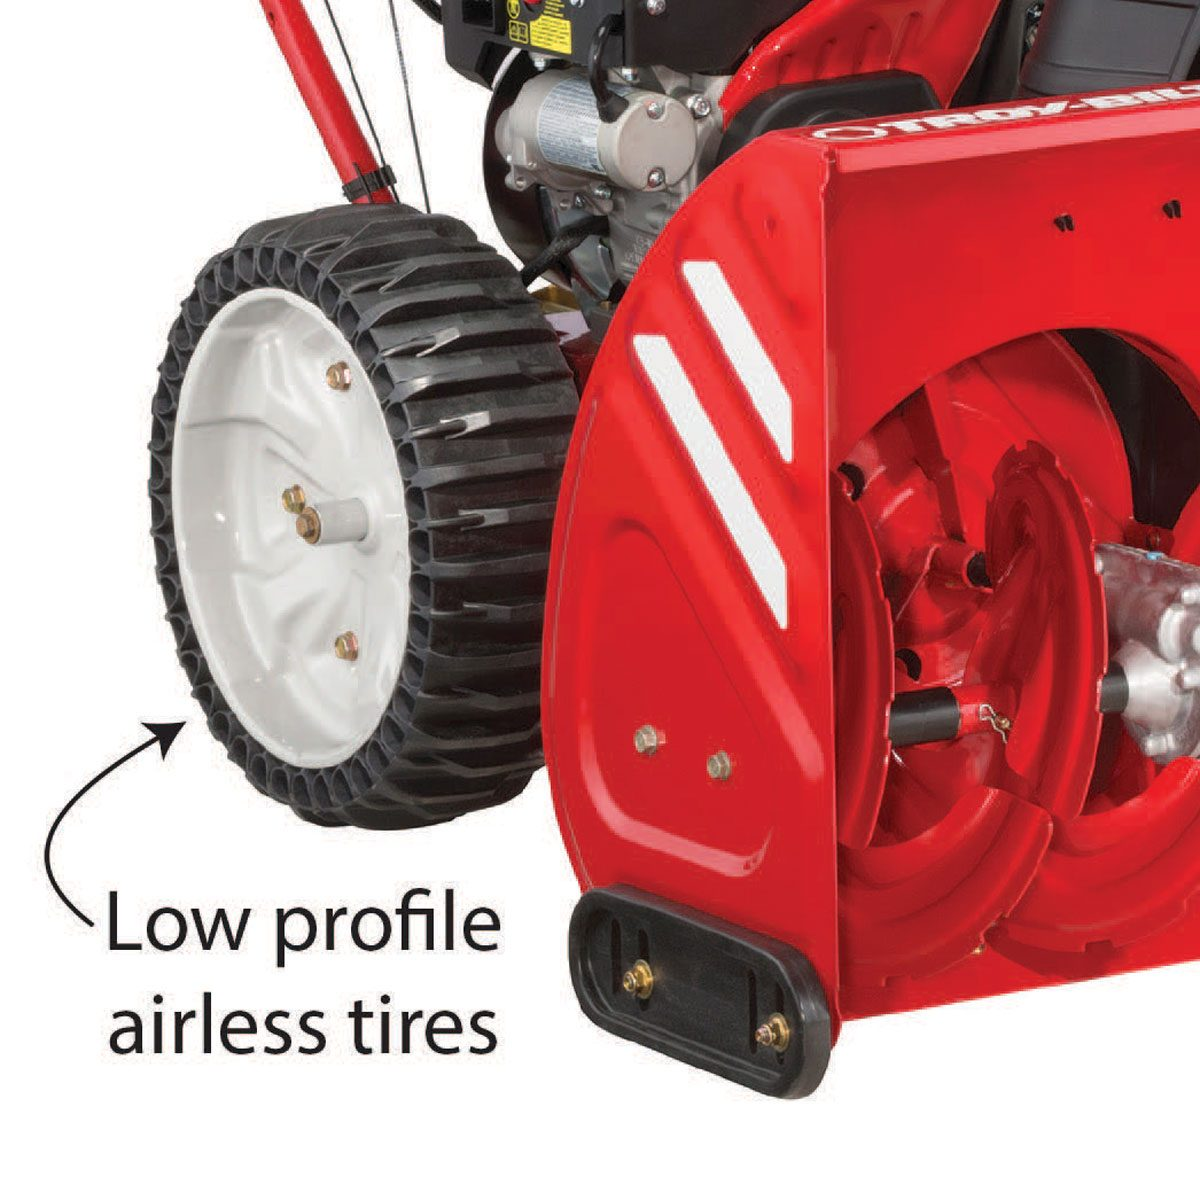 Airless tires are hassle free and keep the snowblower driving straight